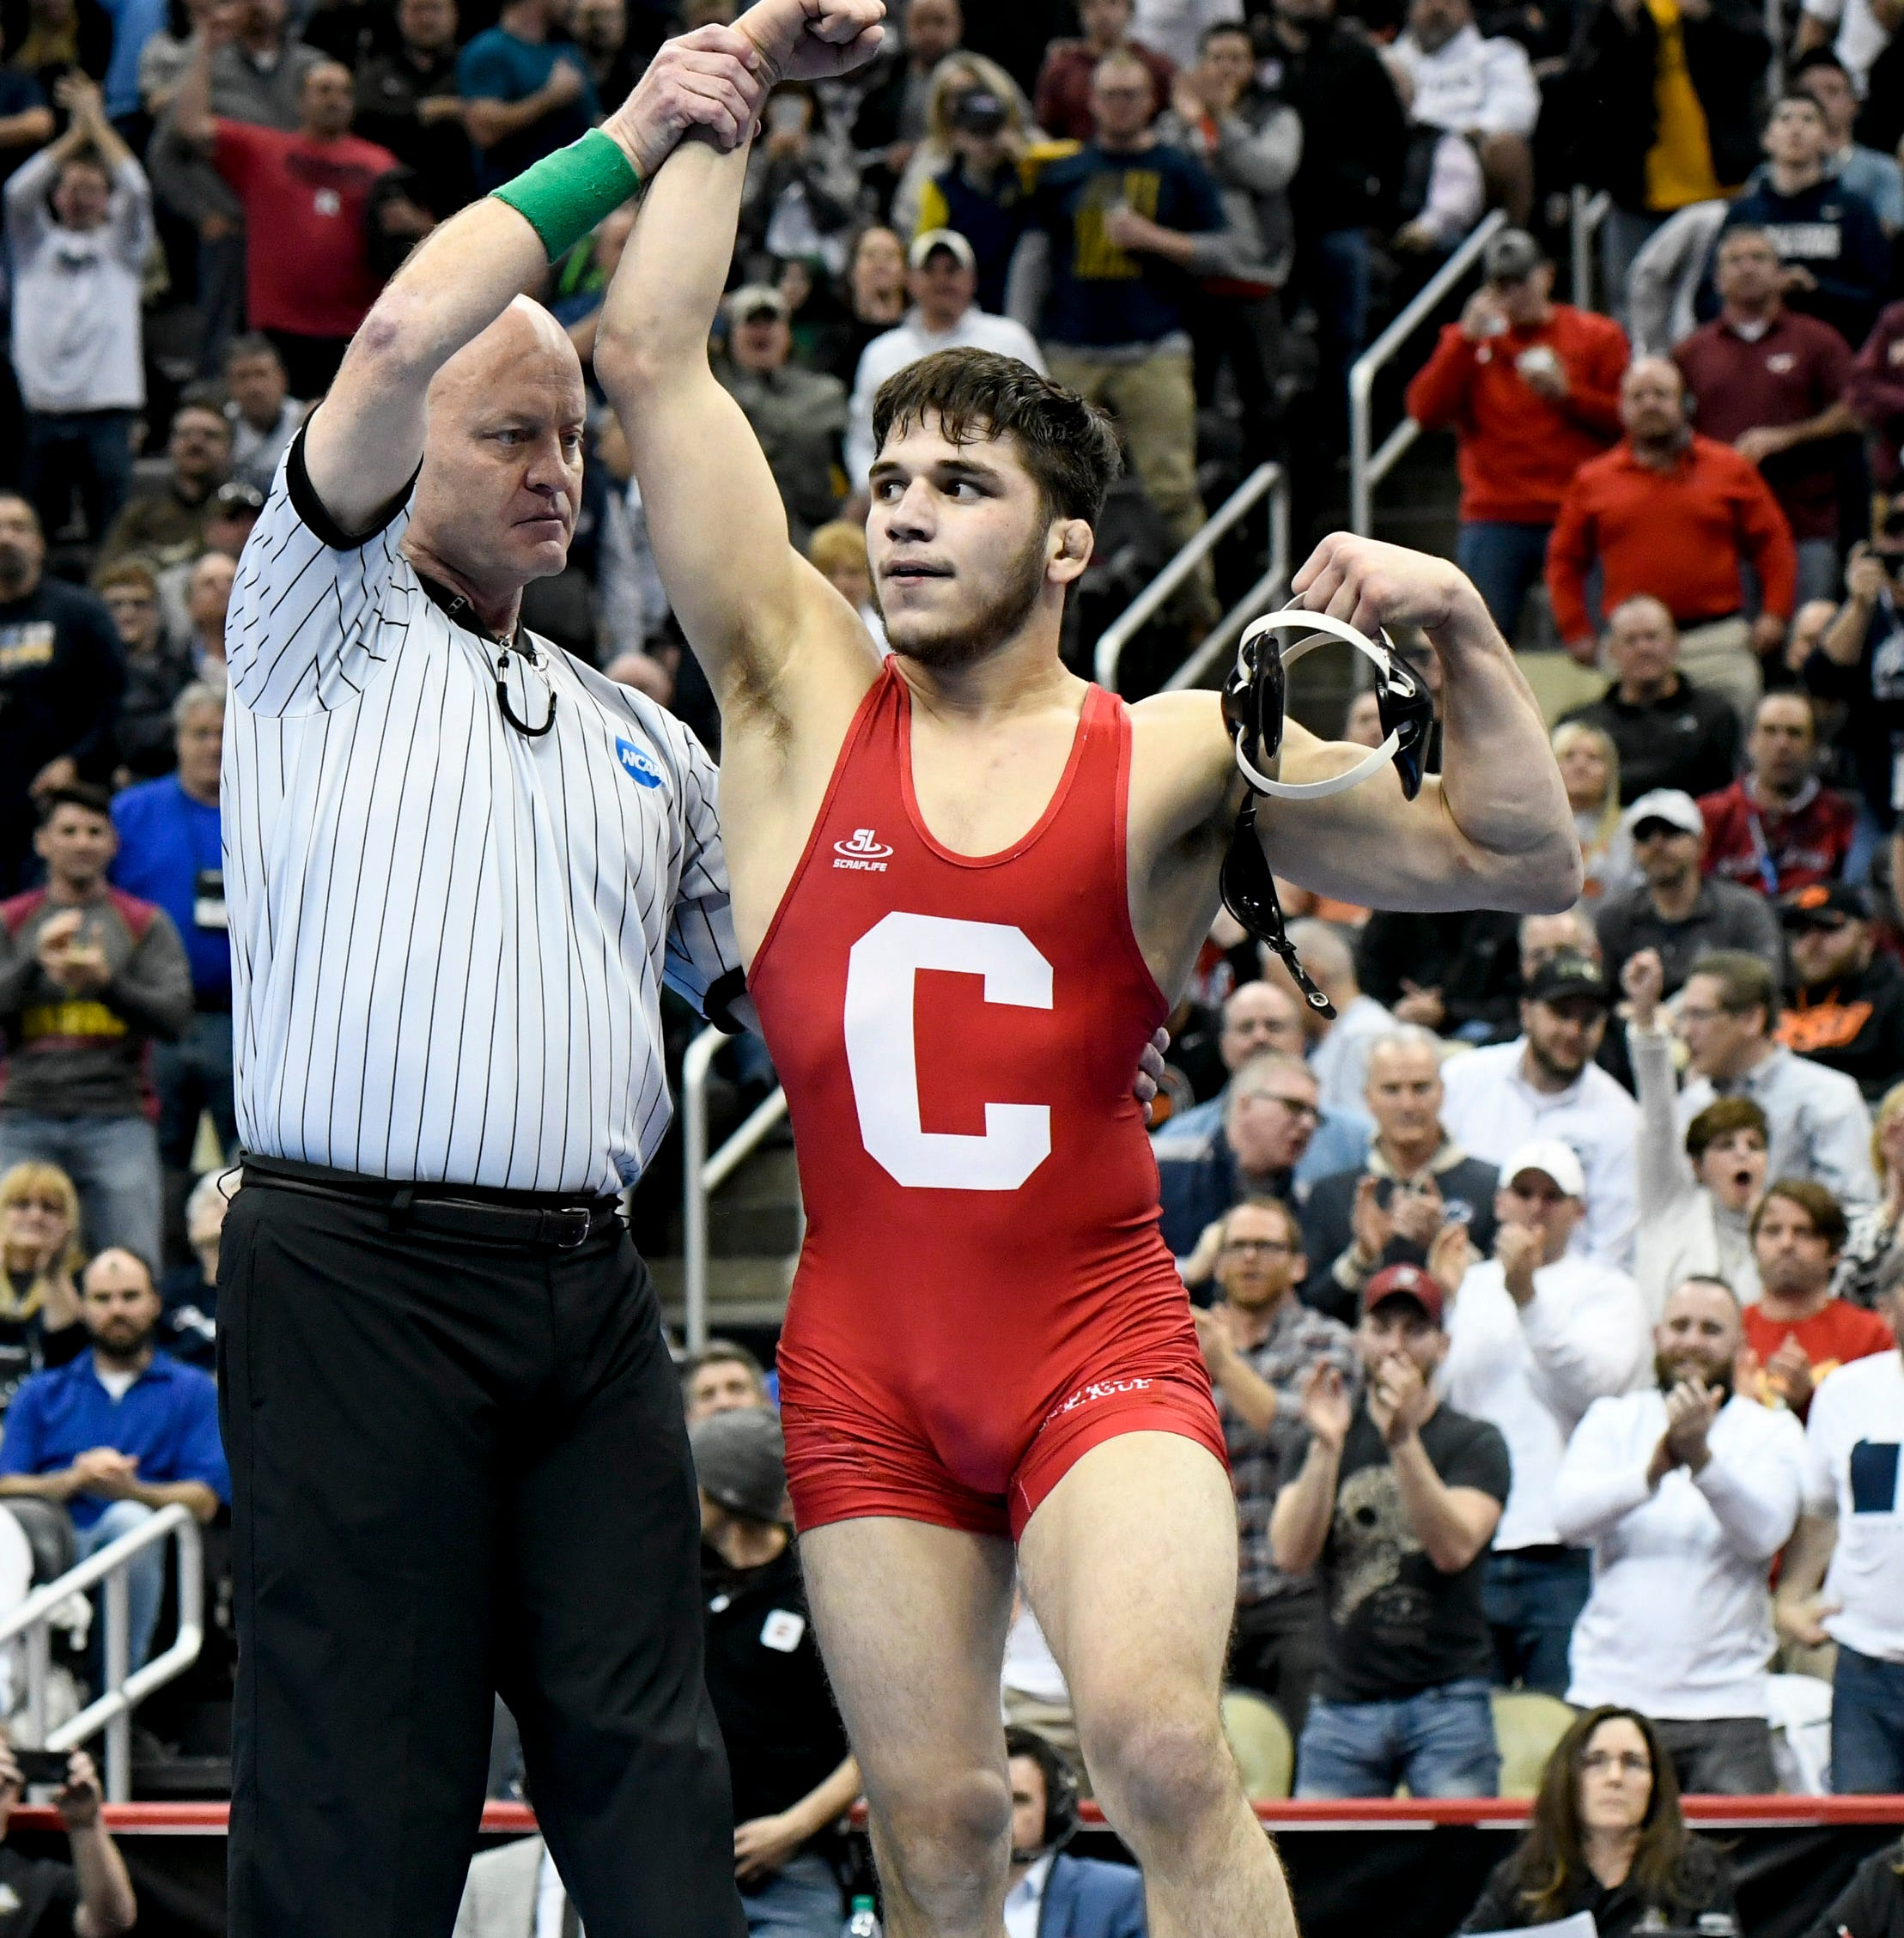 NCAA Wrestling: Cornell's Yianni Diakomihalis wins second straight national title